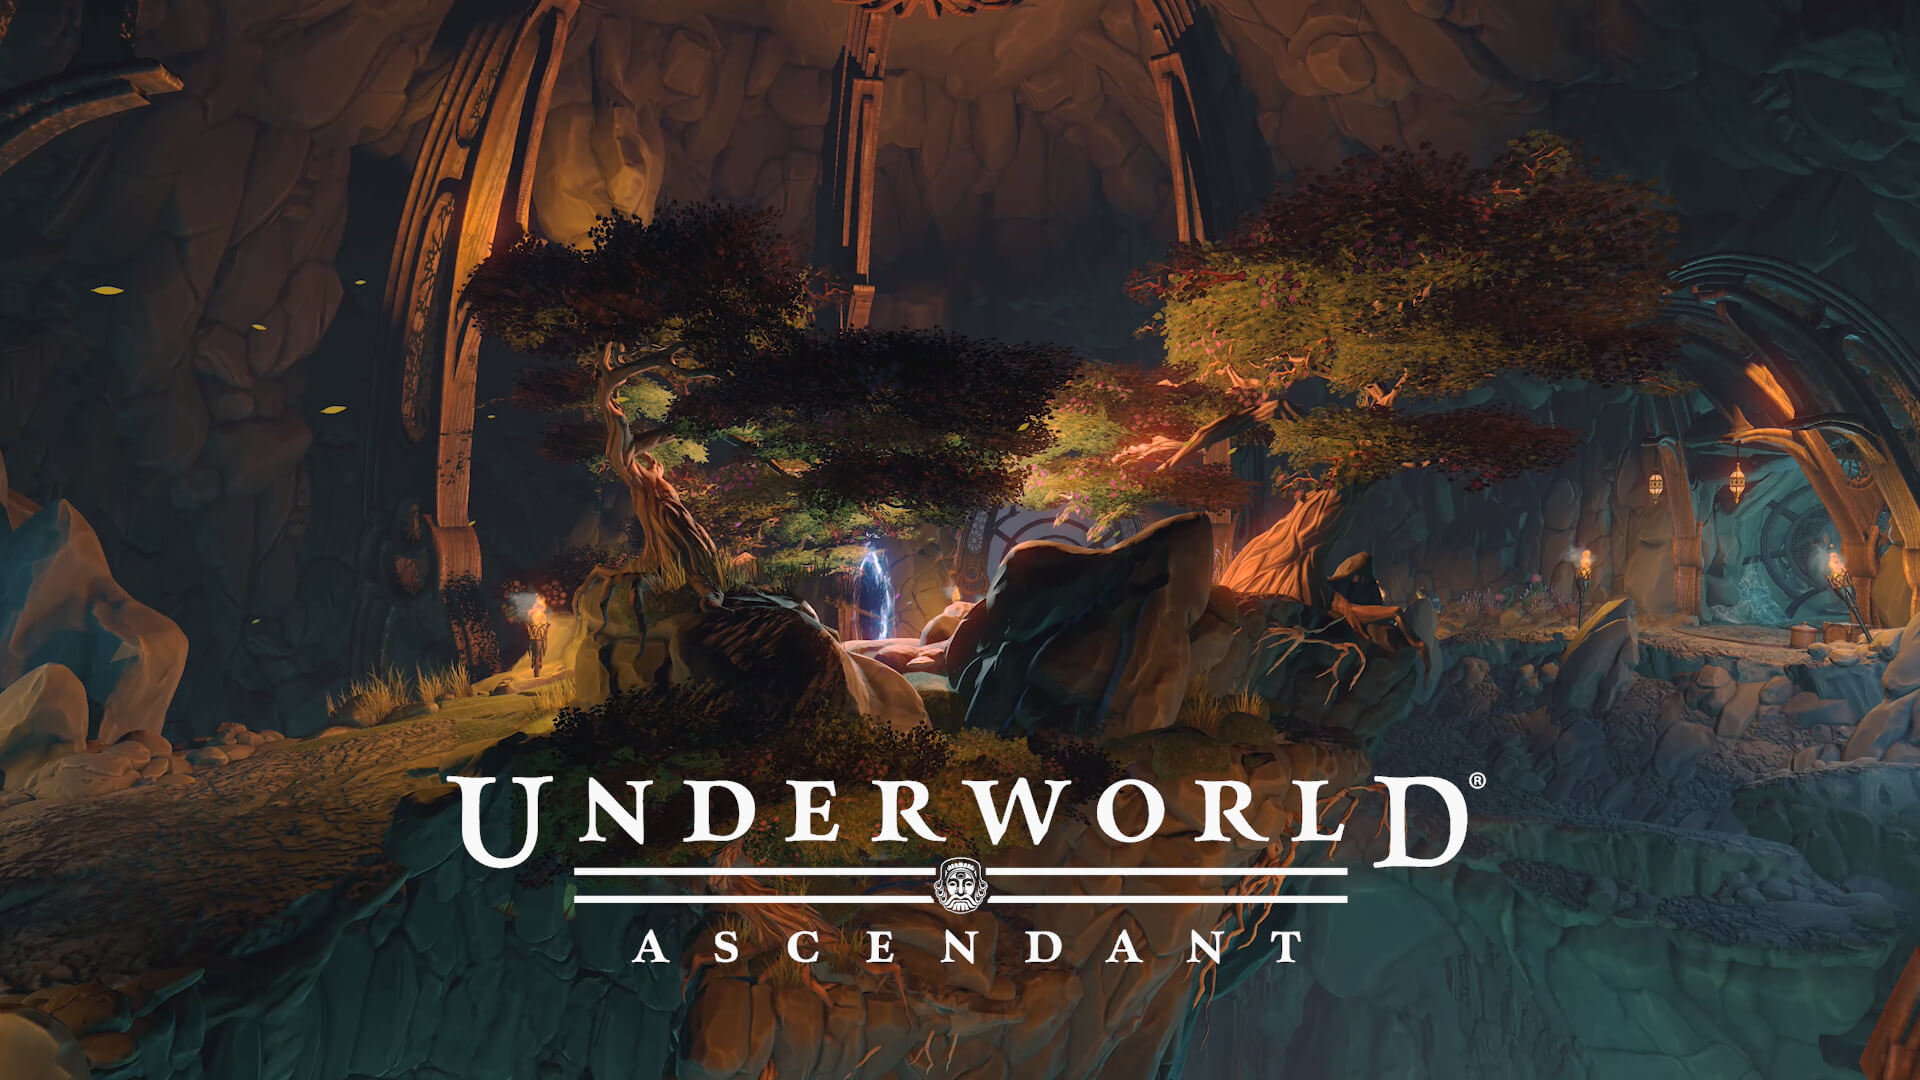 Underworld Ascendant